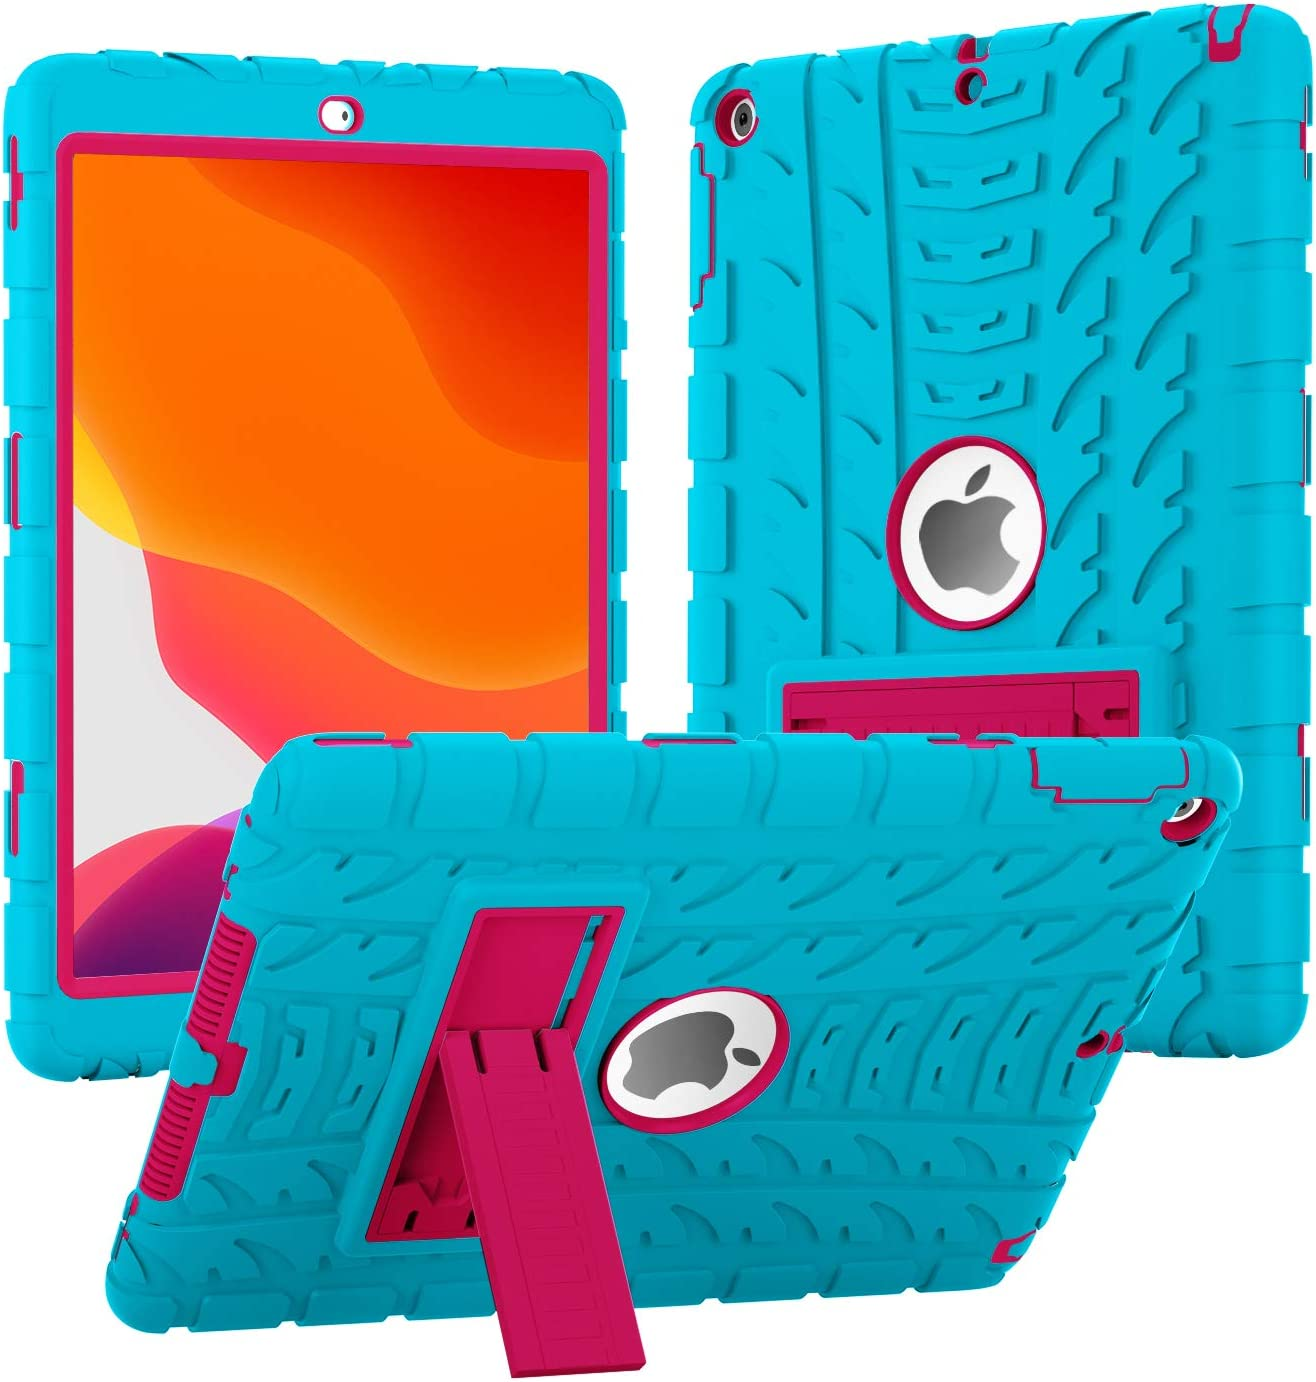 iPad 6th Generation Cases, iPad 9.7 Case 2018 (9.7'' Air 1st/5th/6th 2017/2018) Heavy Duty High-Impact Shock Absorbent Silicone + Hard PC Bumper Protective Case (Turquoise/Hot Pink)